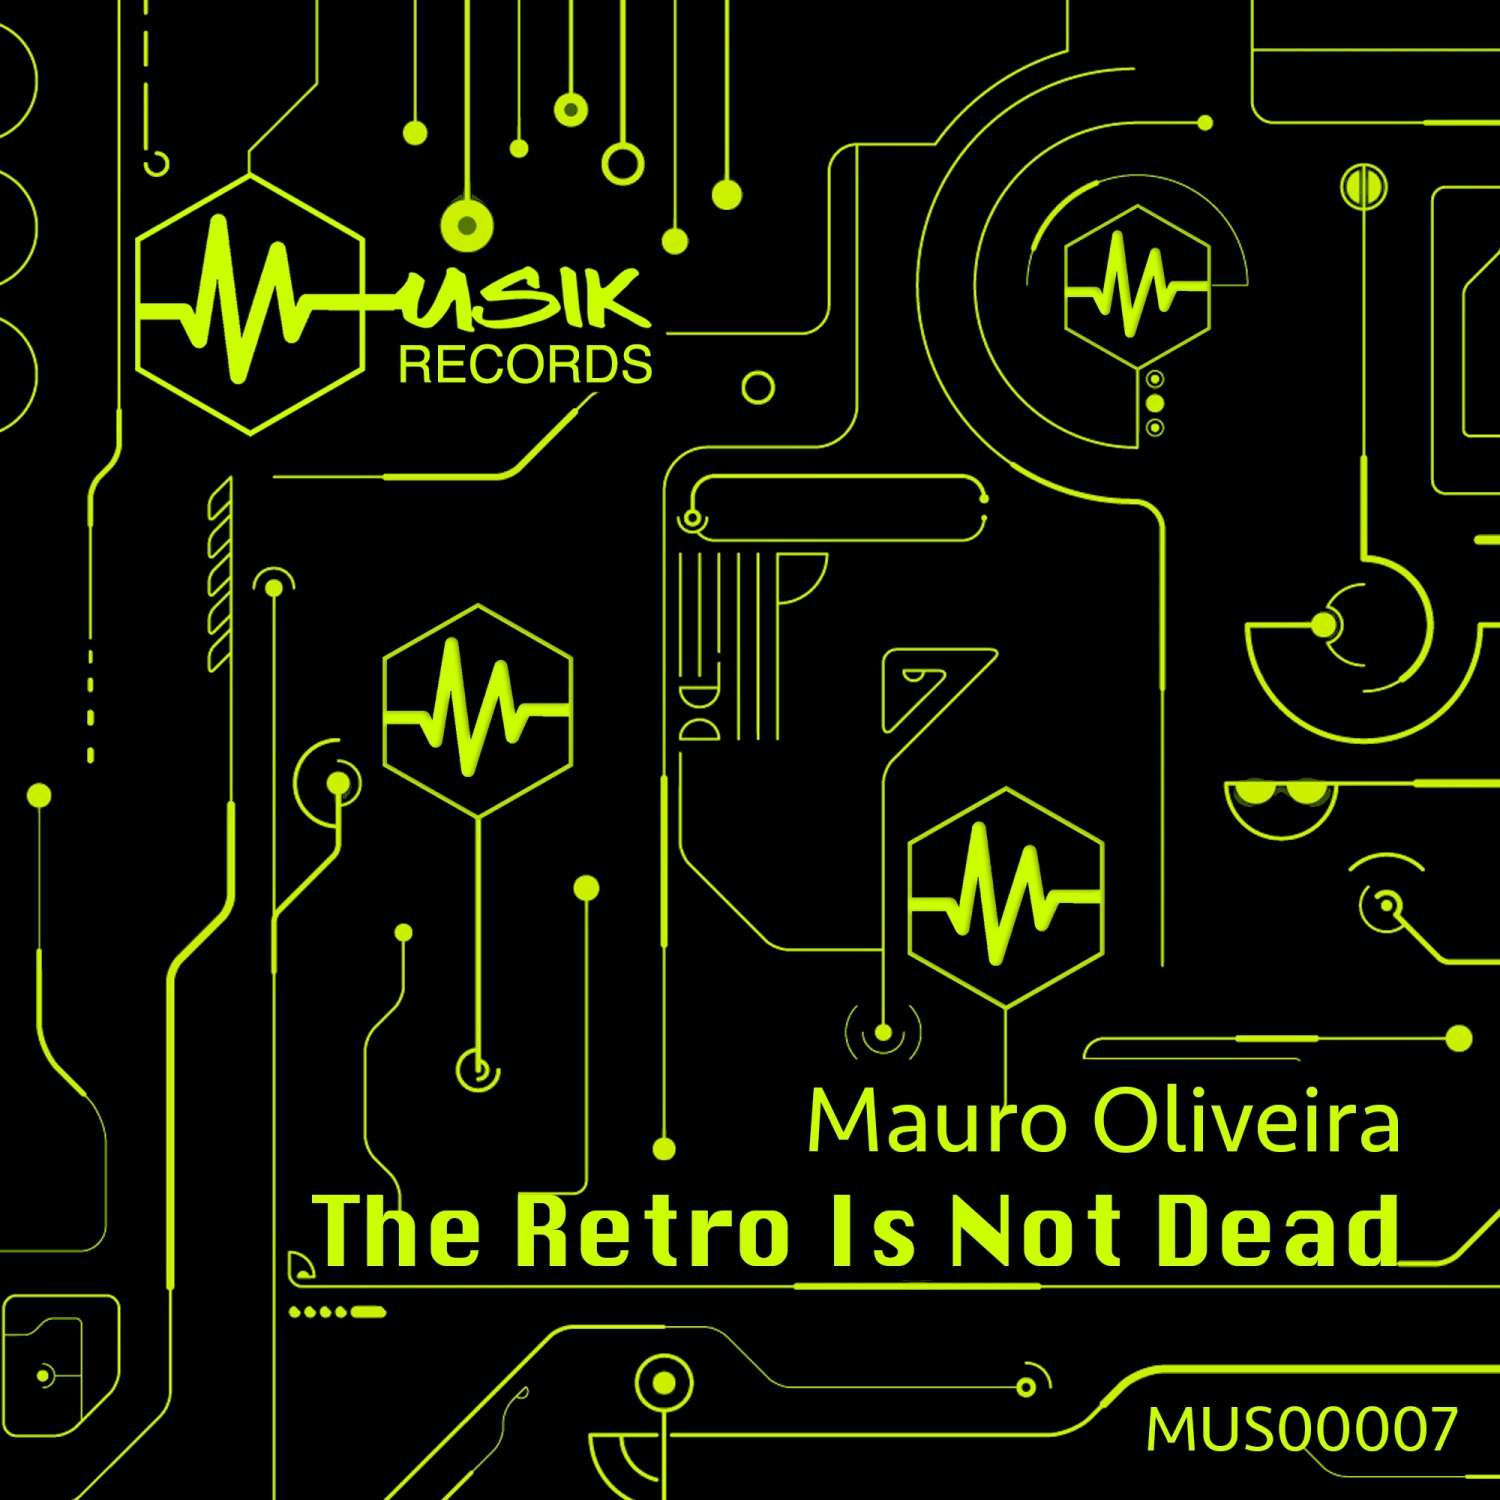 Mauro Oliveira - The Retro Is Not Dead (Original Mix)